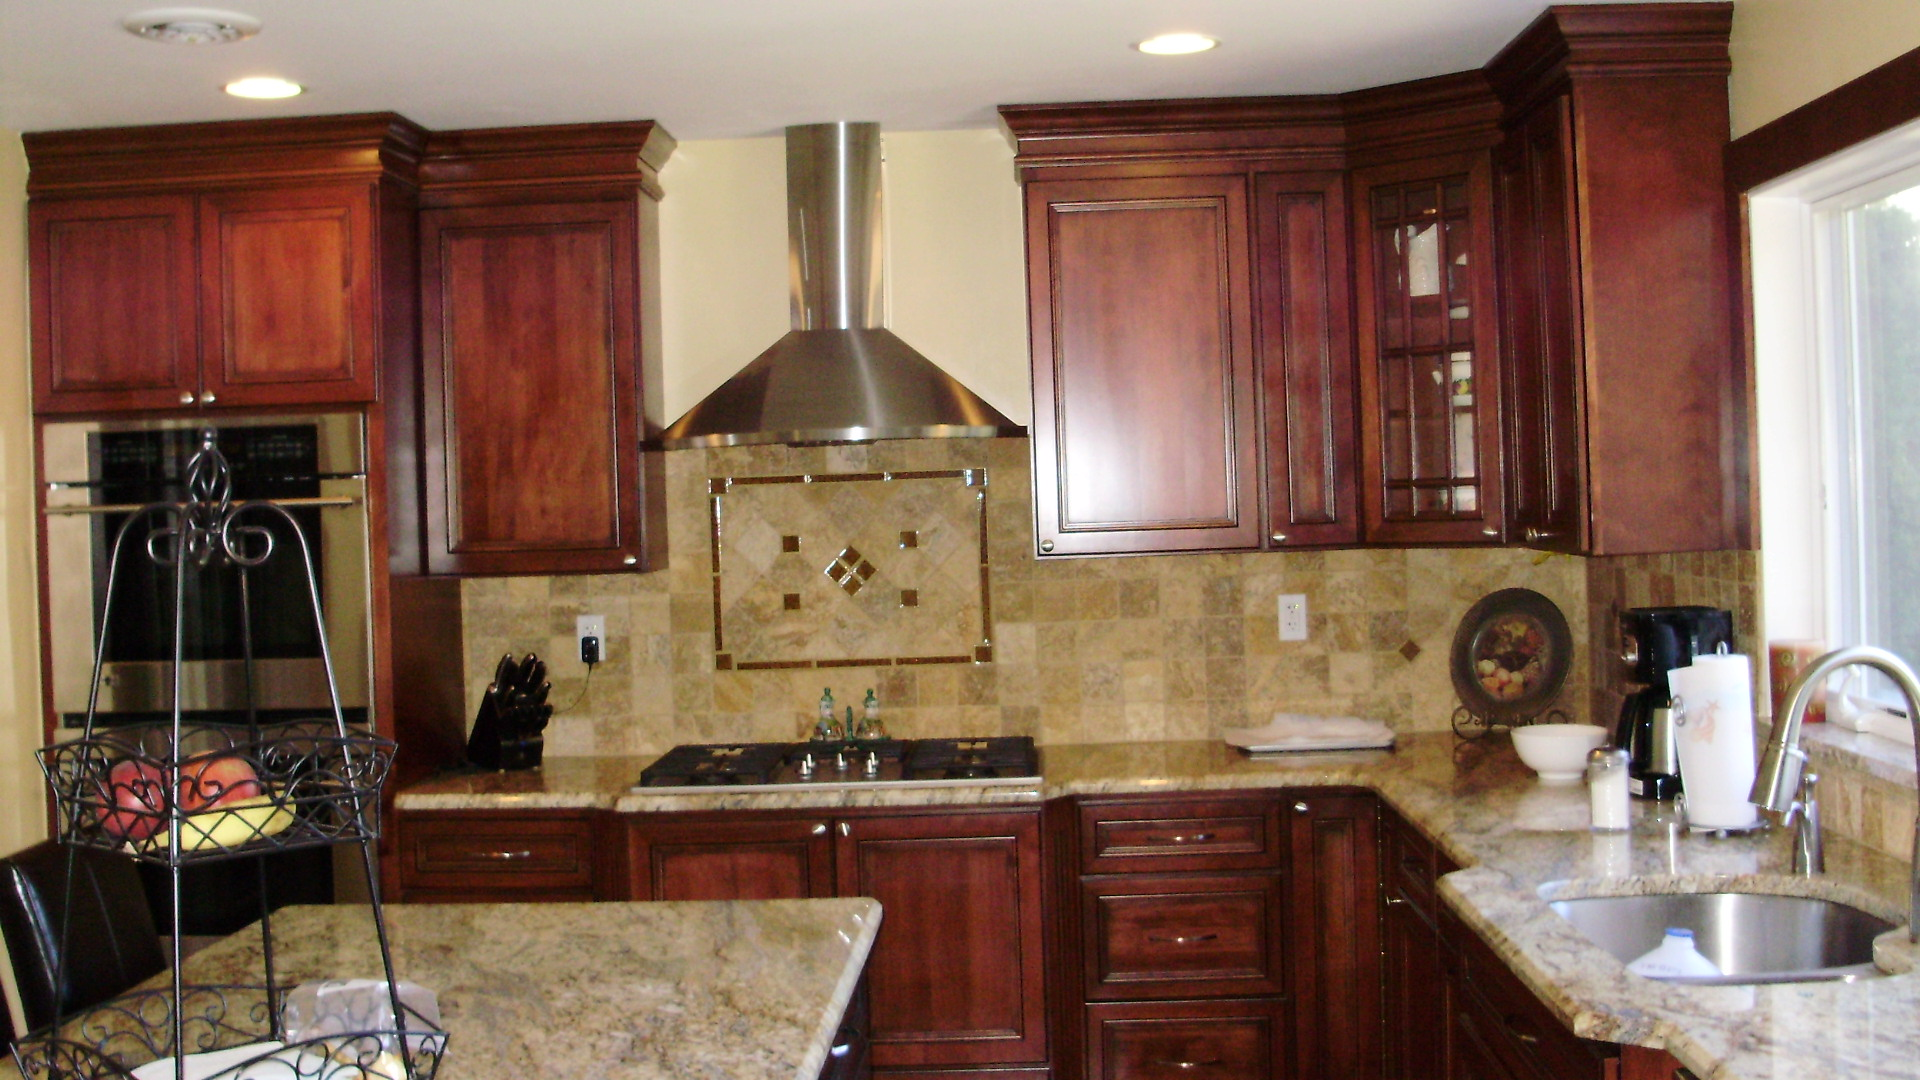 another happy kitchen customer-October 31 2008